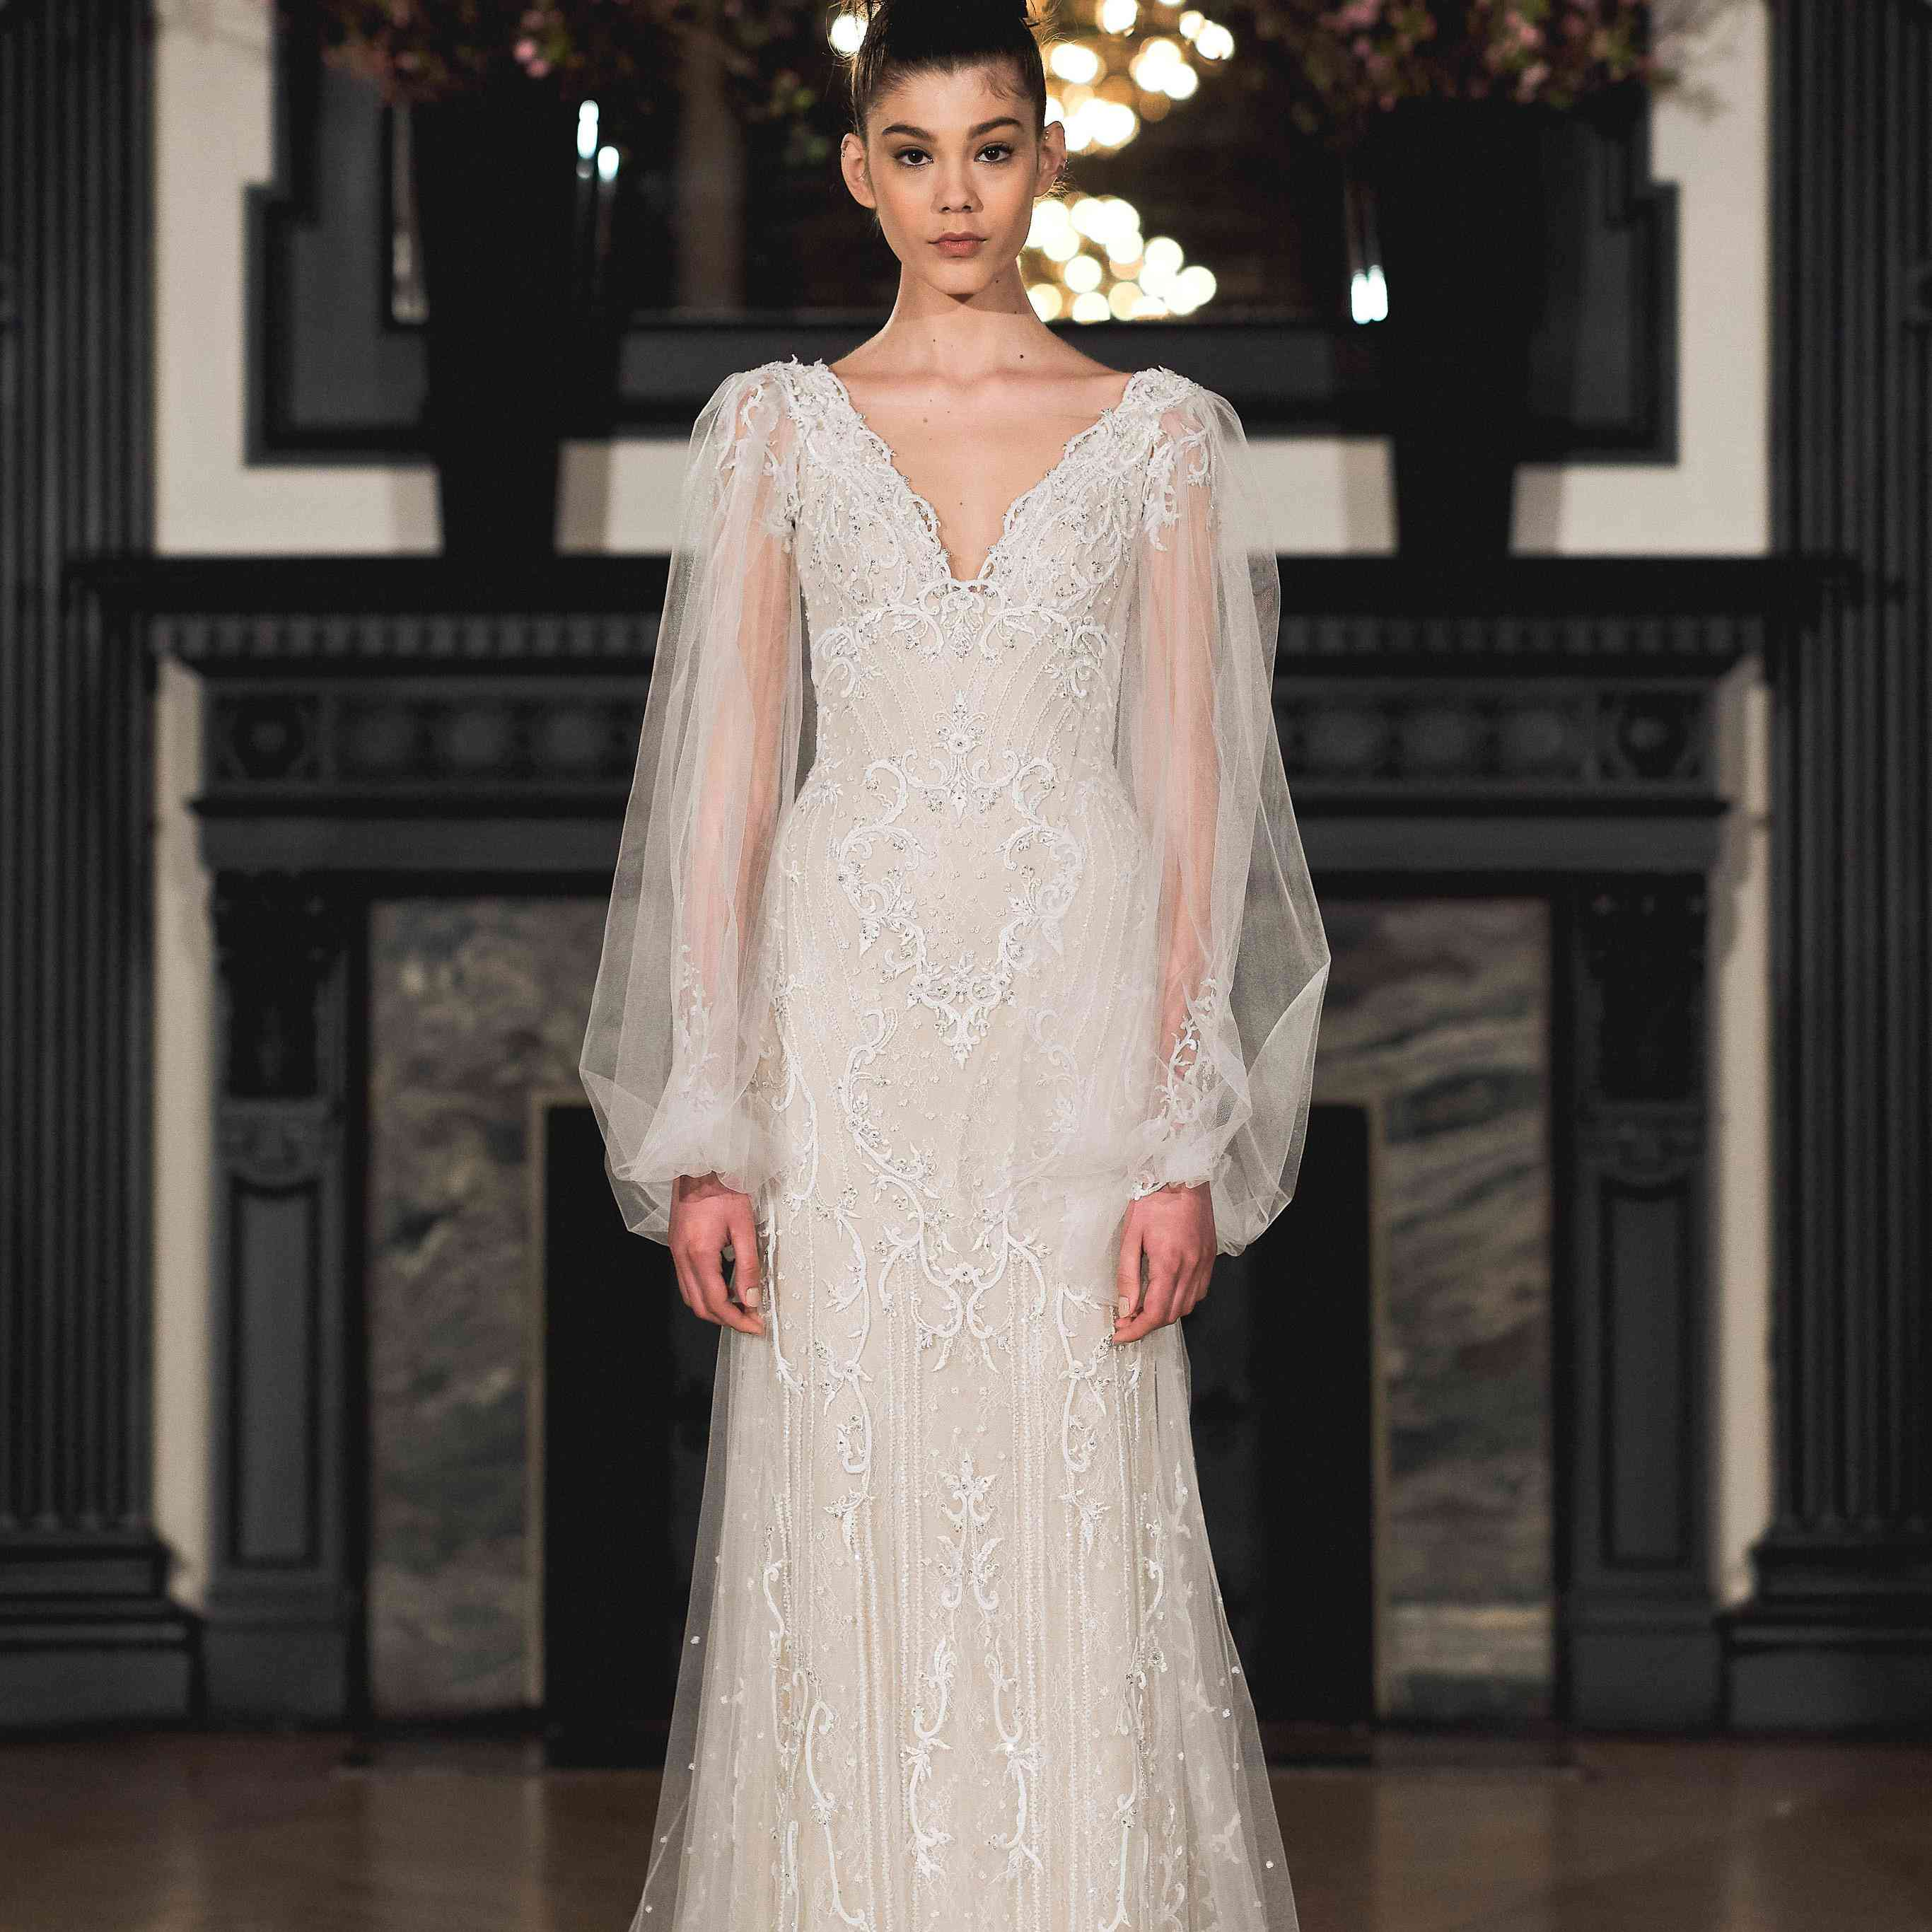 80 Long Sleeve Wedding Dresses For Every Bridal Style